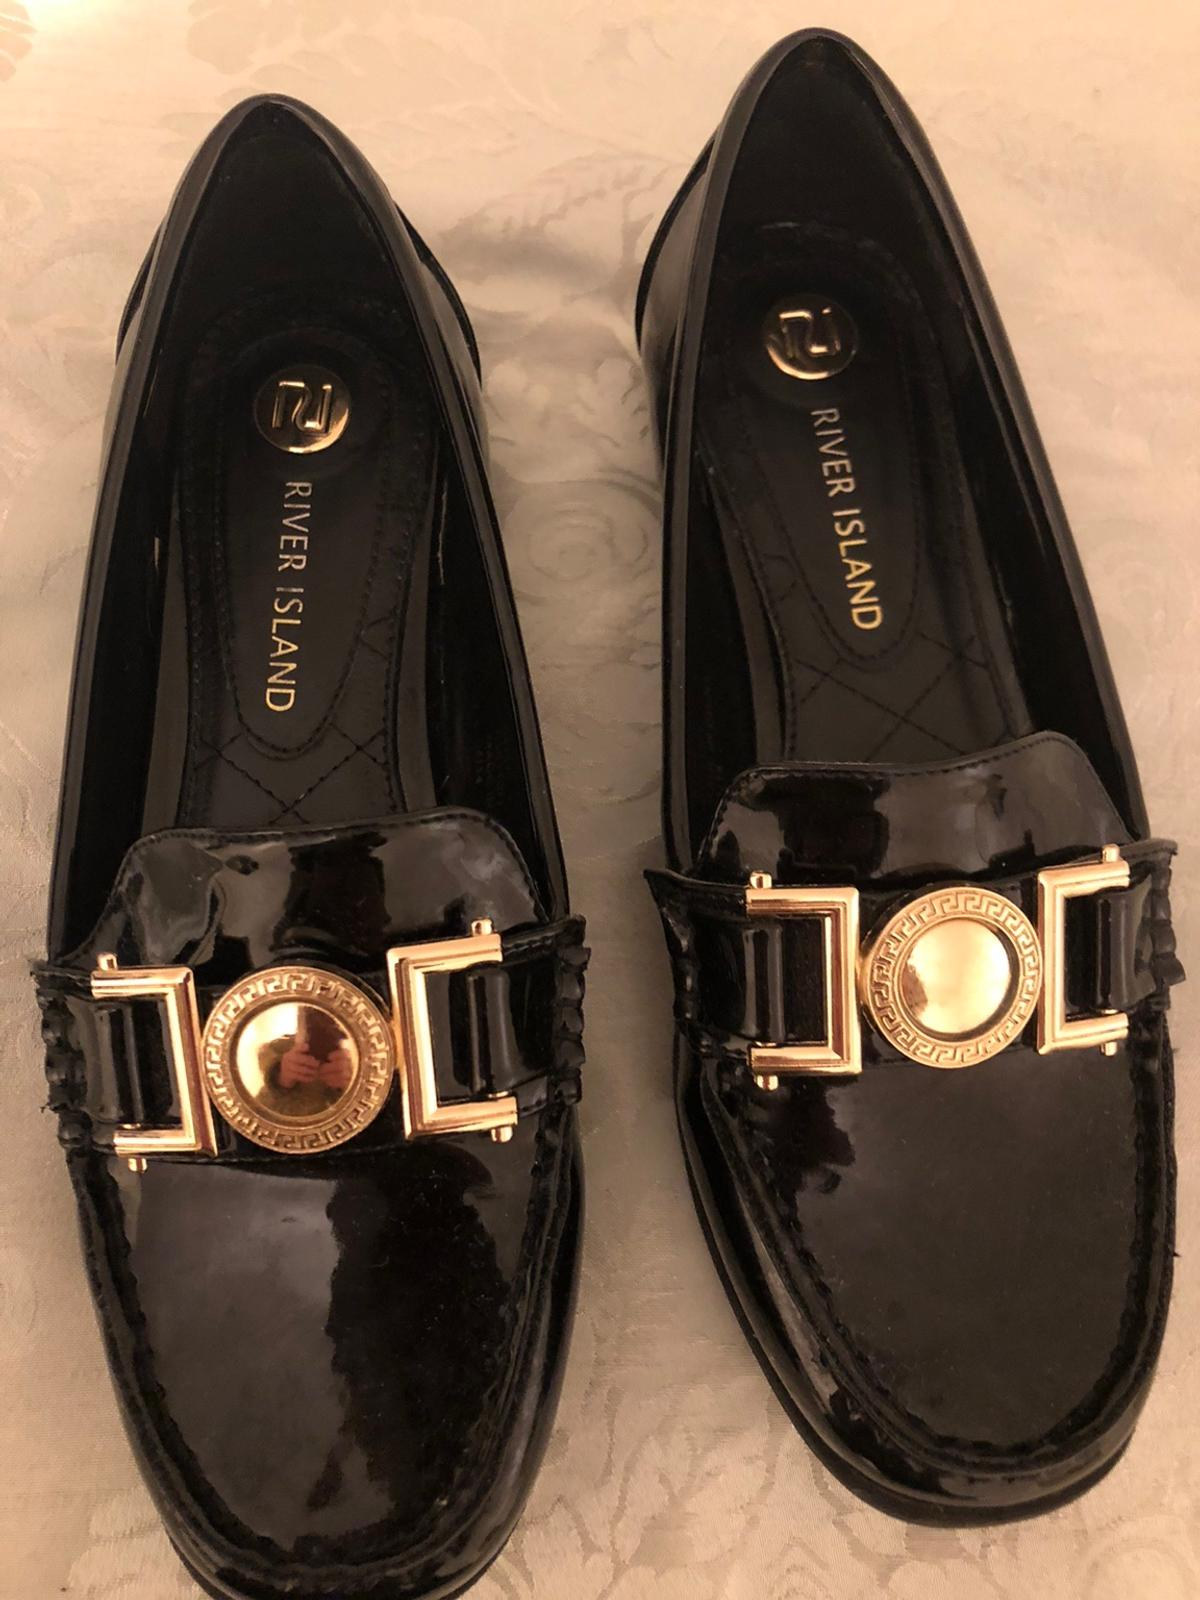 River island loafers excellent condition collection only